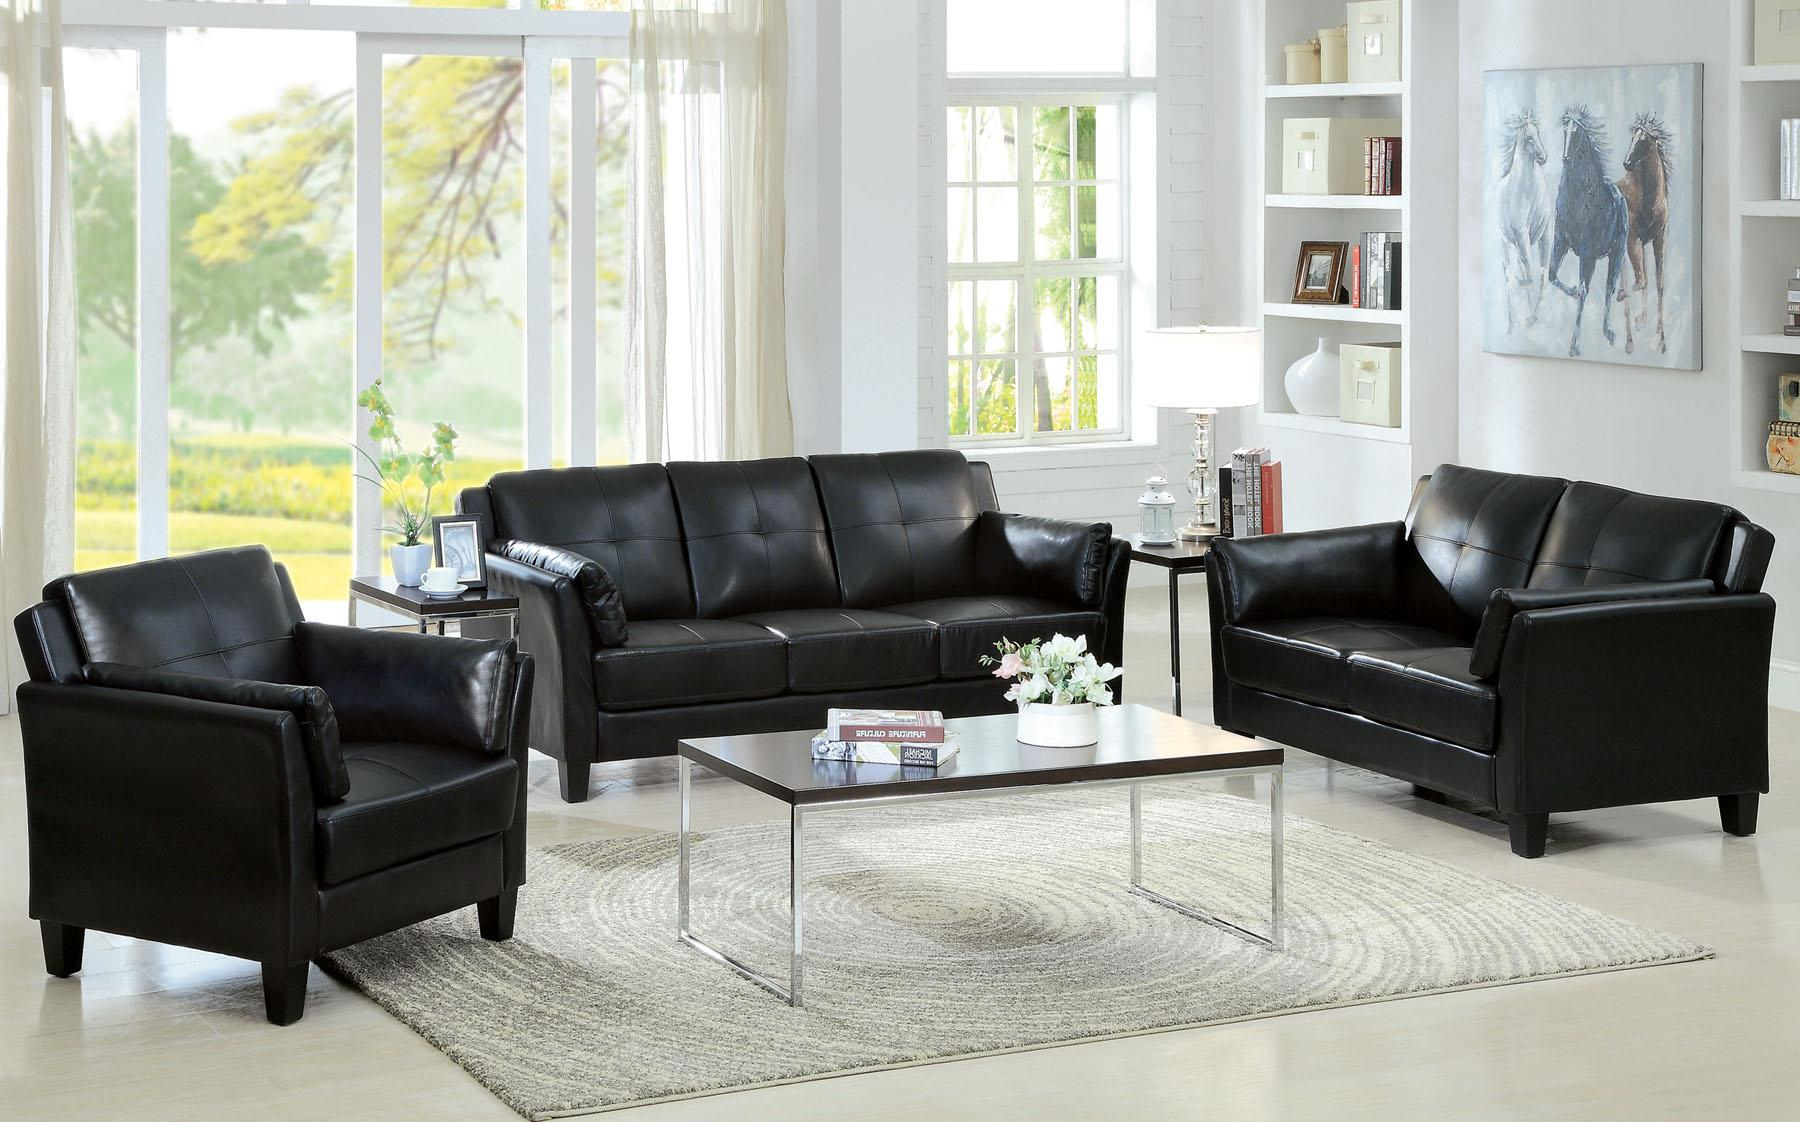 Furniture of America / Import Direct CM6717 Living Room Group - Item Number: CM6717